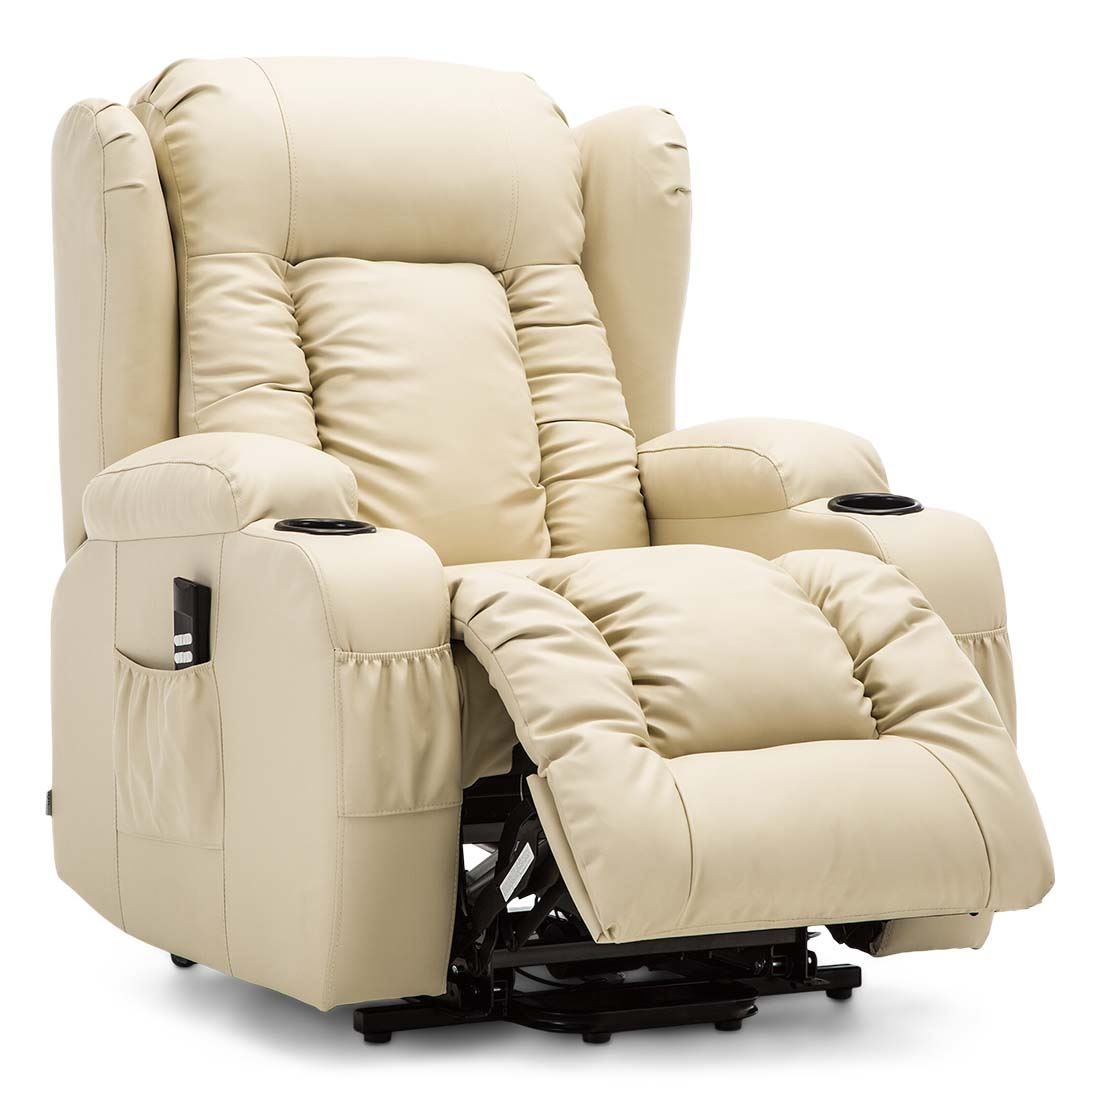 CAESAR-DUAL-MOTOR-RISER-RECLINER-LEATHER-MOBILITY-ARMCHAIR-MASSAGE-HEATED-CHAIR thumbnail 19